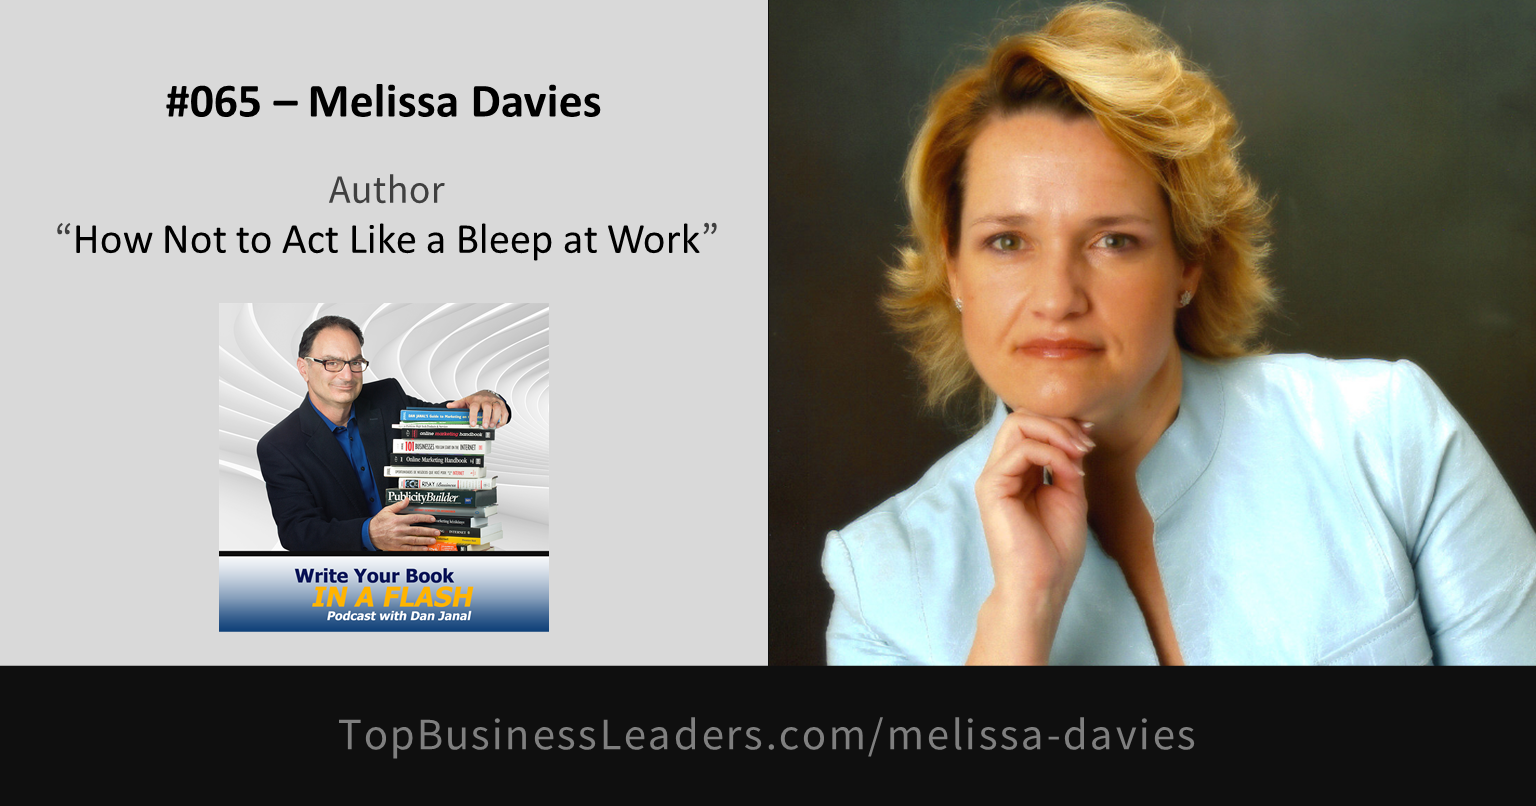 melissa-davies-author-how-not-to-act-like-a-bleep-at-work